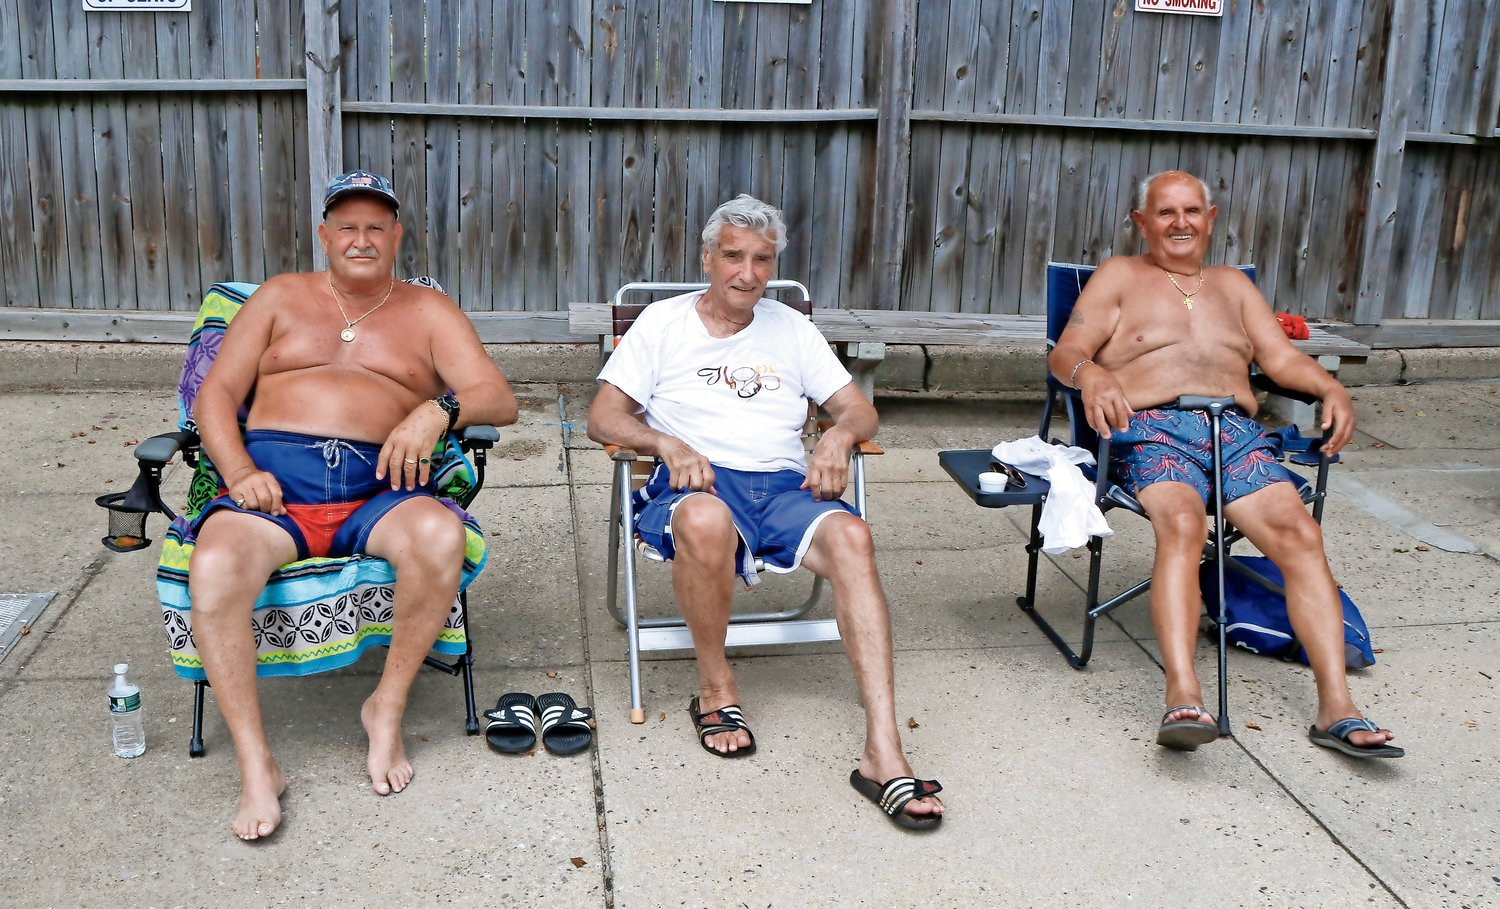 Doo Wop Group members, Giovanni Montenora, Richard Ernst and Tony Brito relaxed poolside.